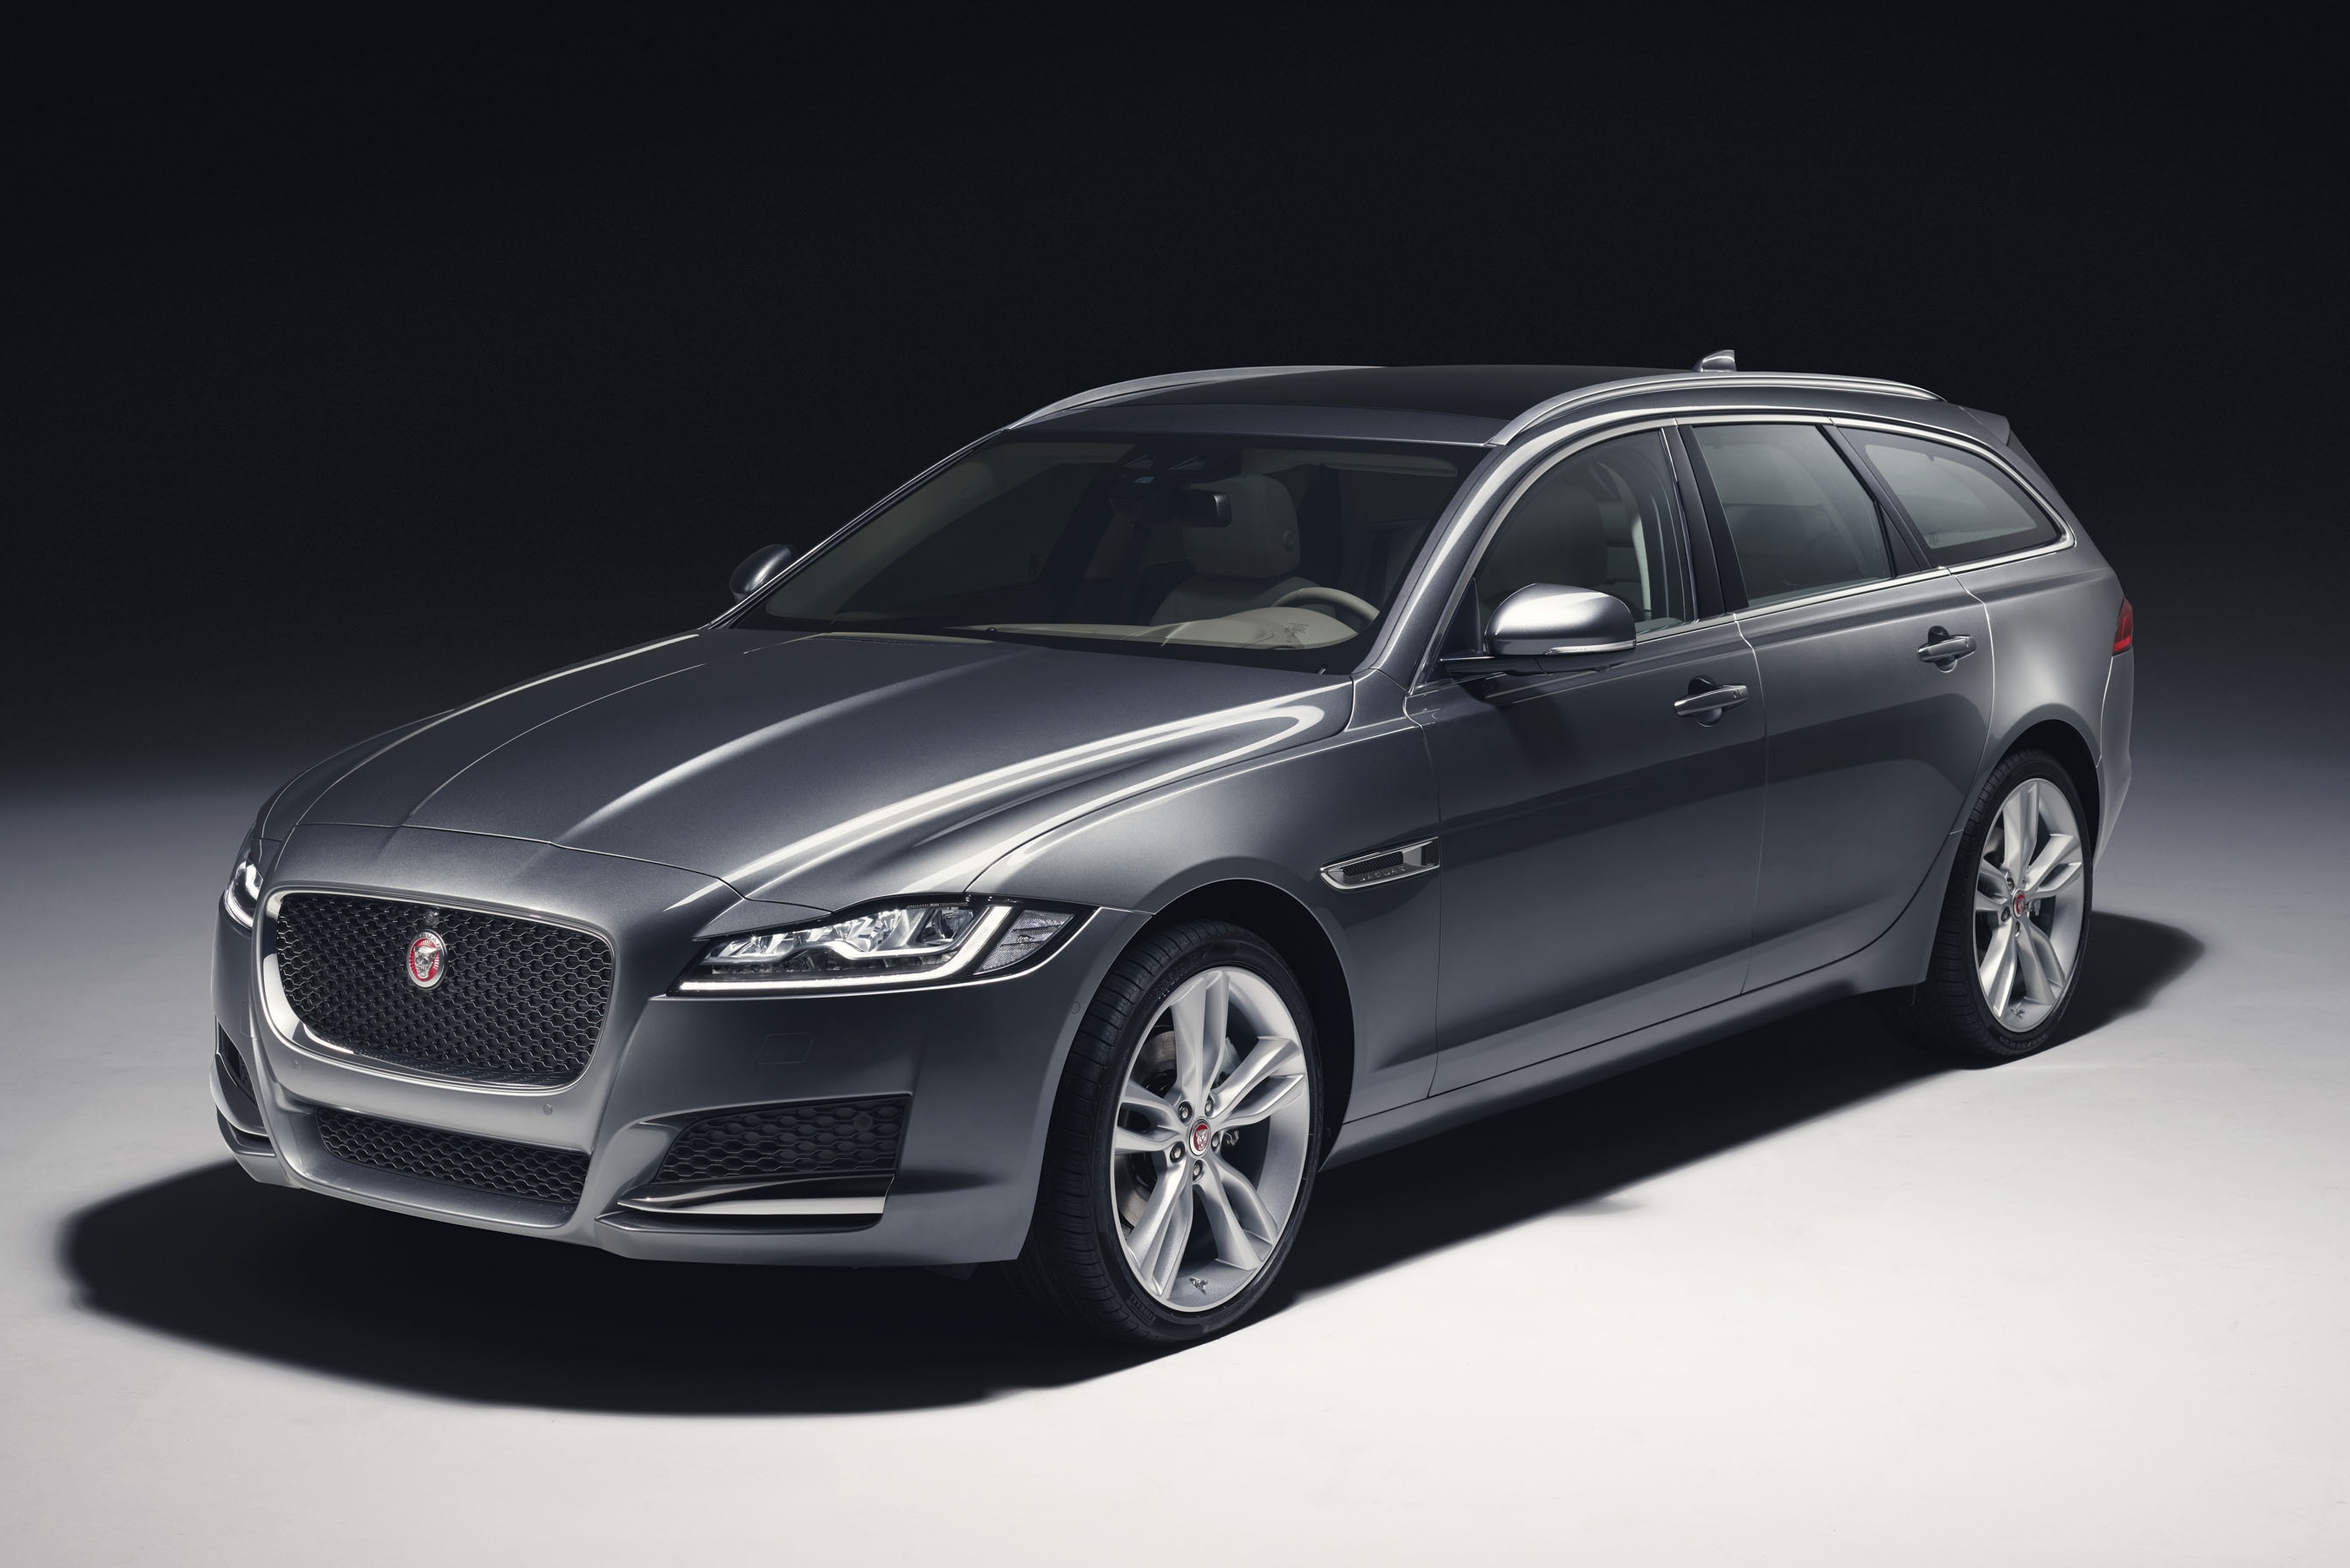 used jaguar diesel sale reviews news for s cars speed top xf supercharged and